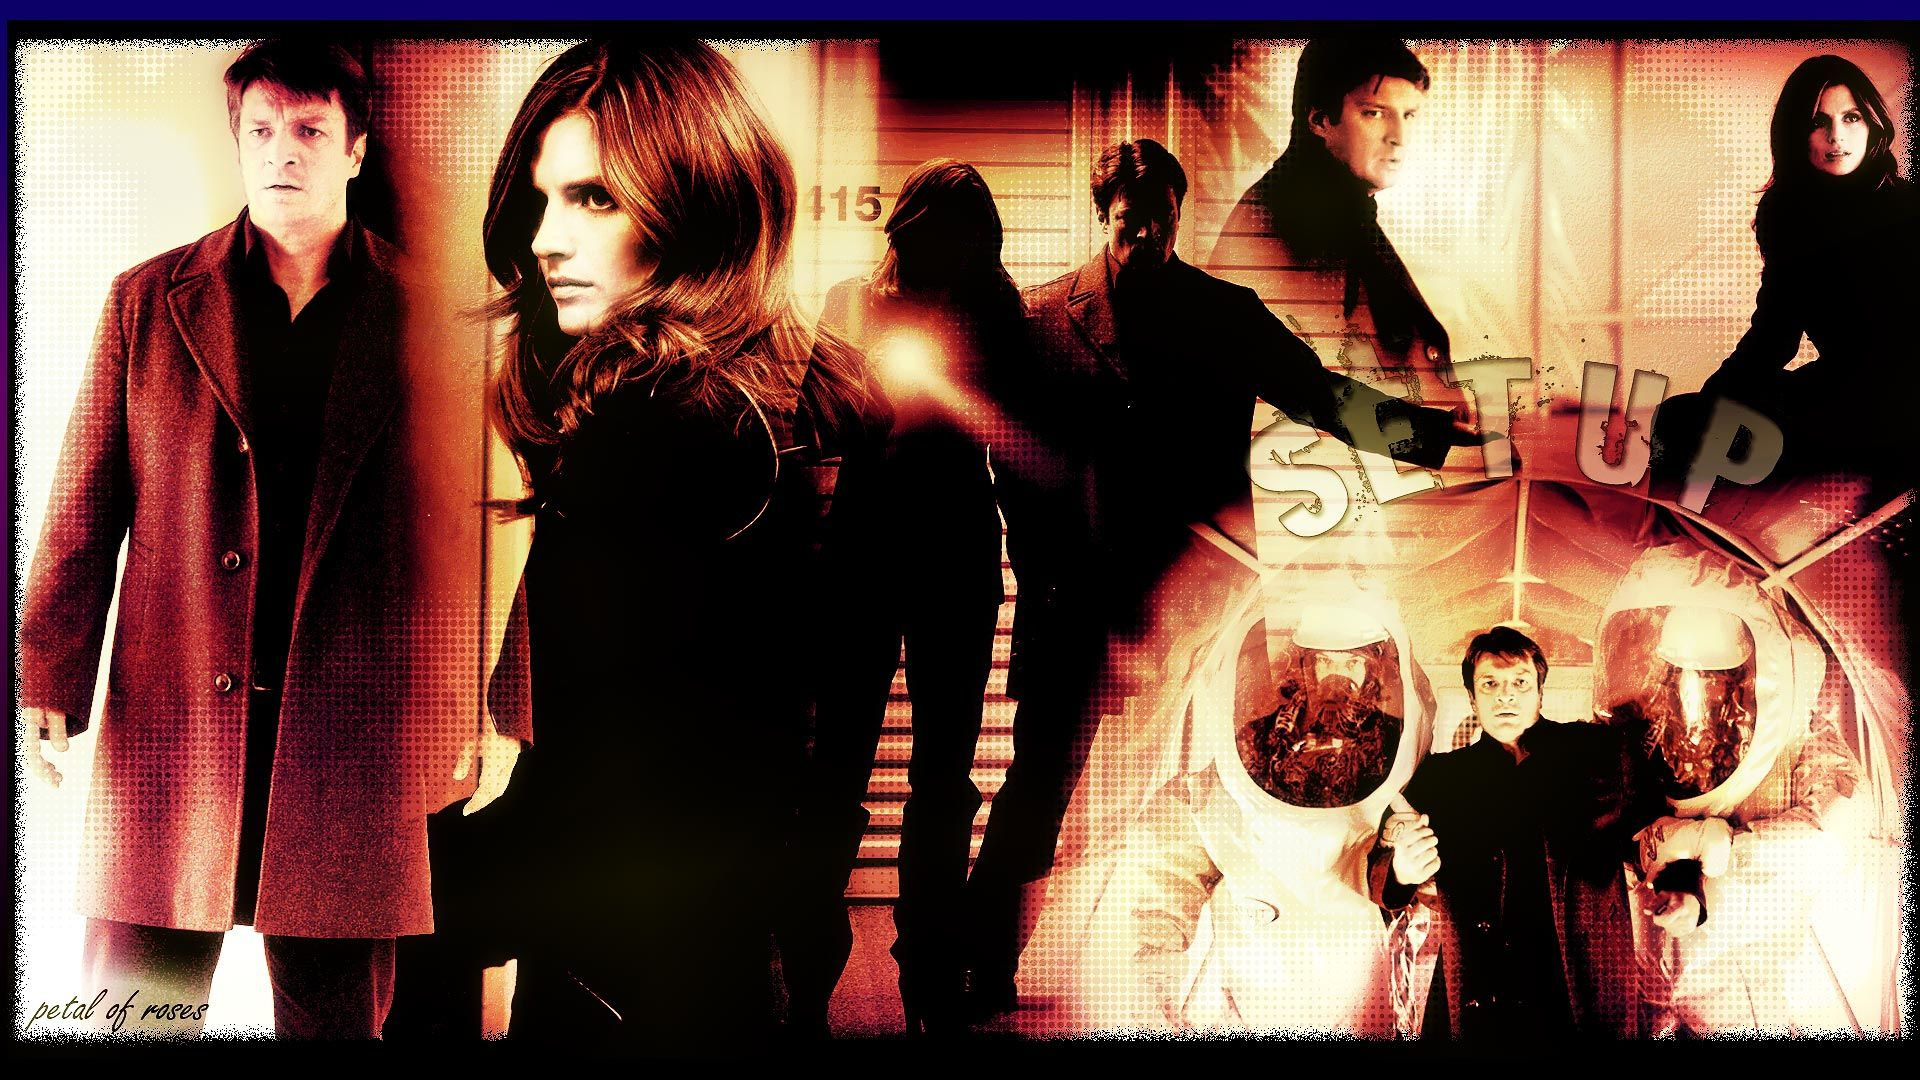 Castle Tv Awesome Wallpapers Scorpion Tv Show Wallpapers 10